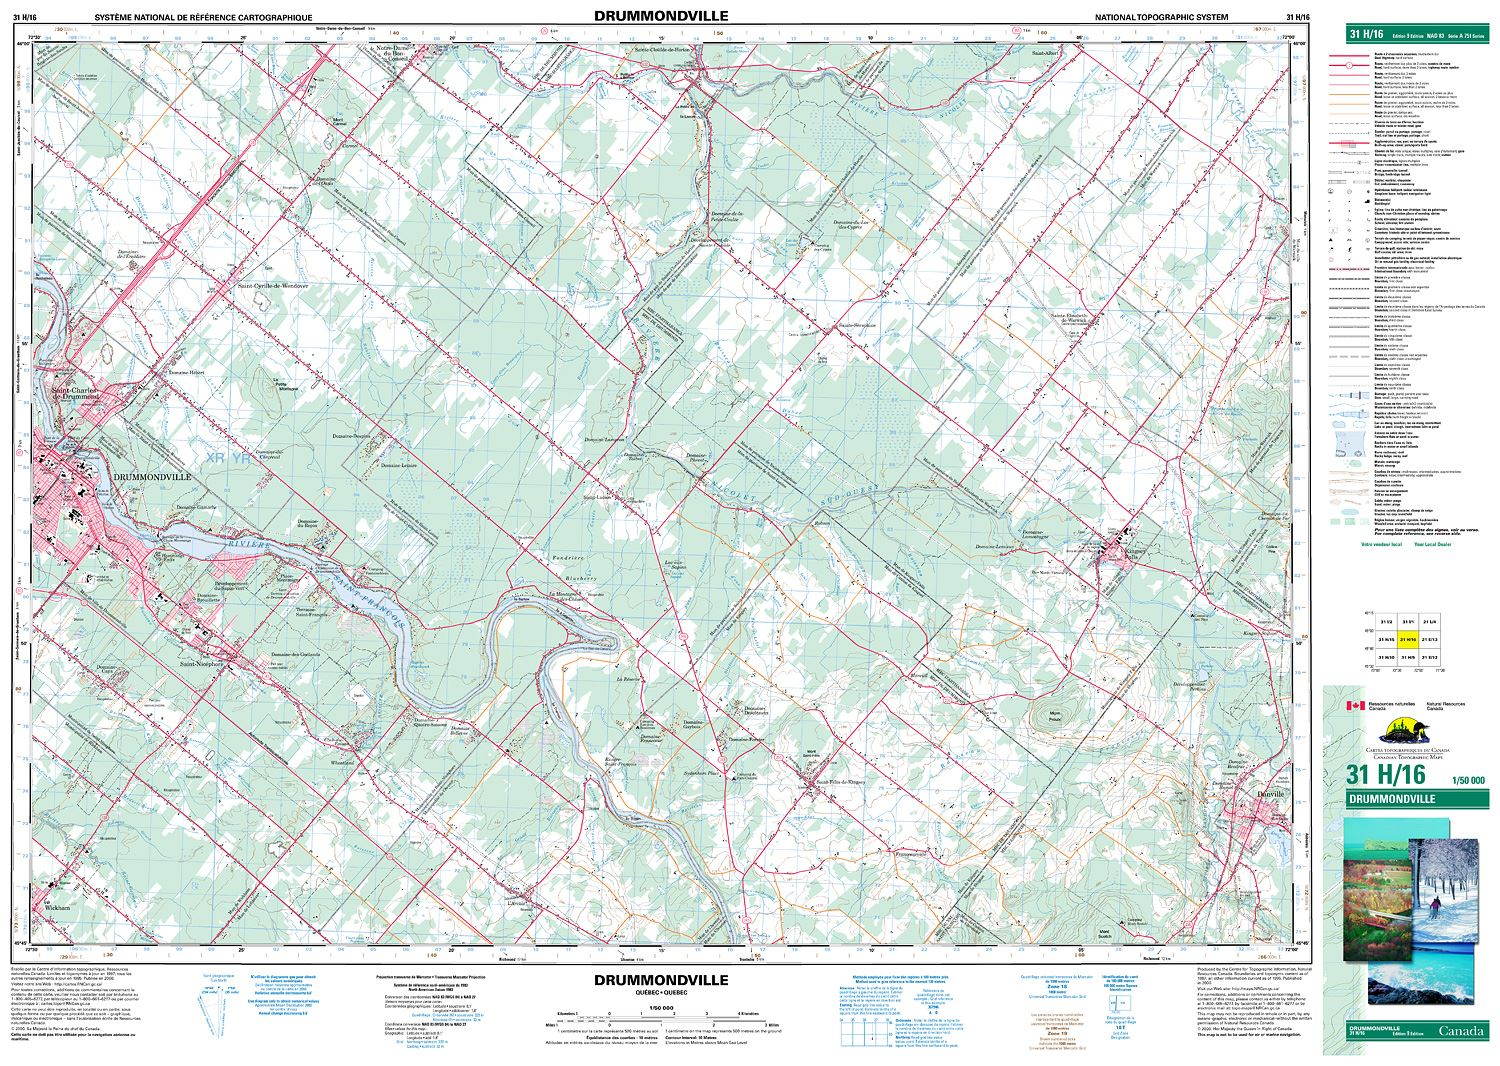 DRUMMONDVILLE Topographic Map